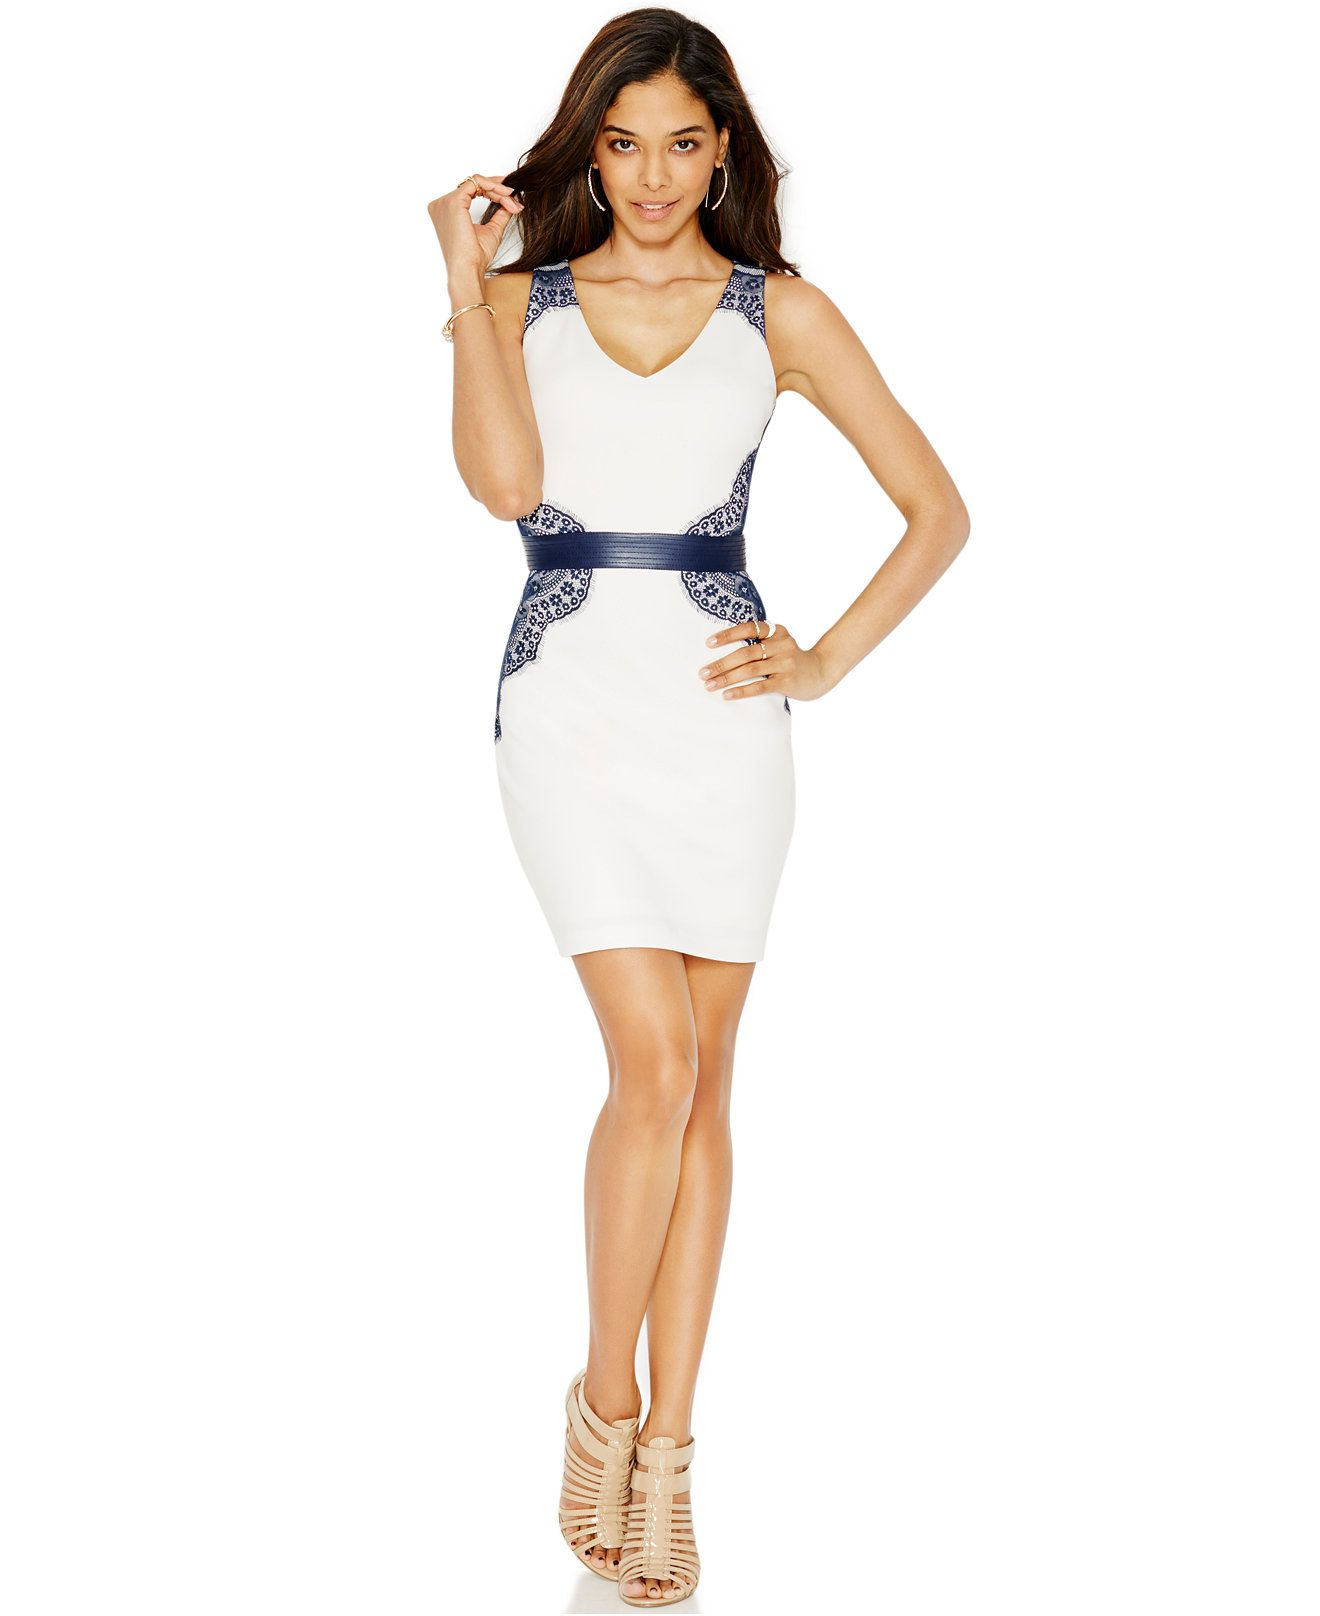 macy's wedding dresses GUESS Lace Belted Bodycon Dress Dresses Women Macy s